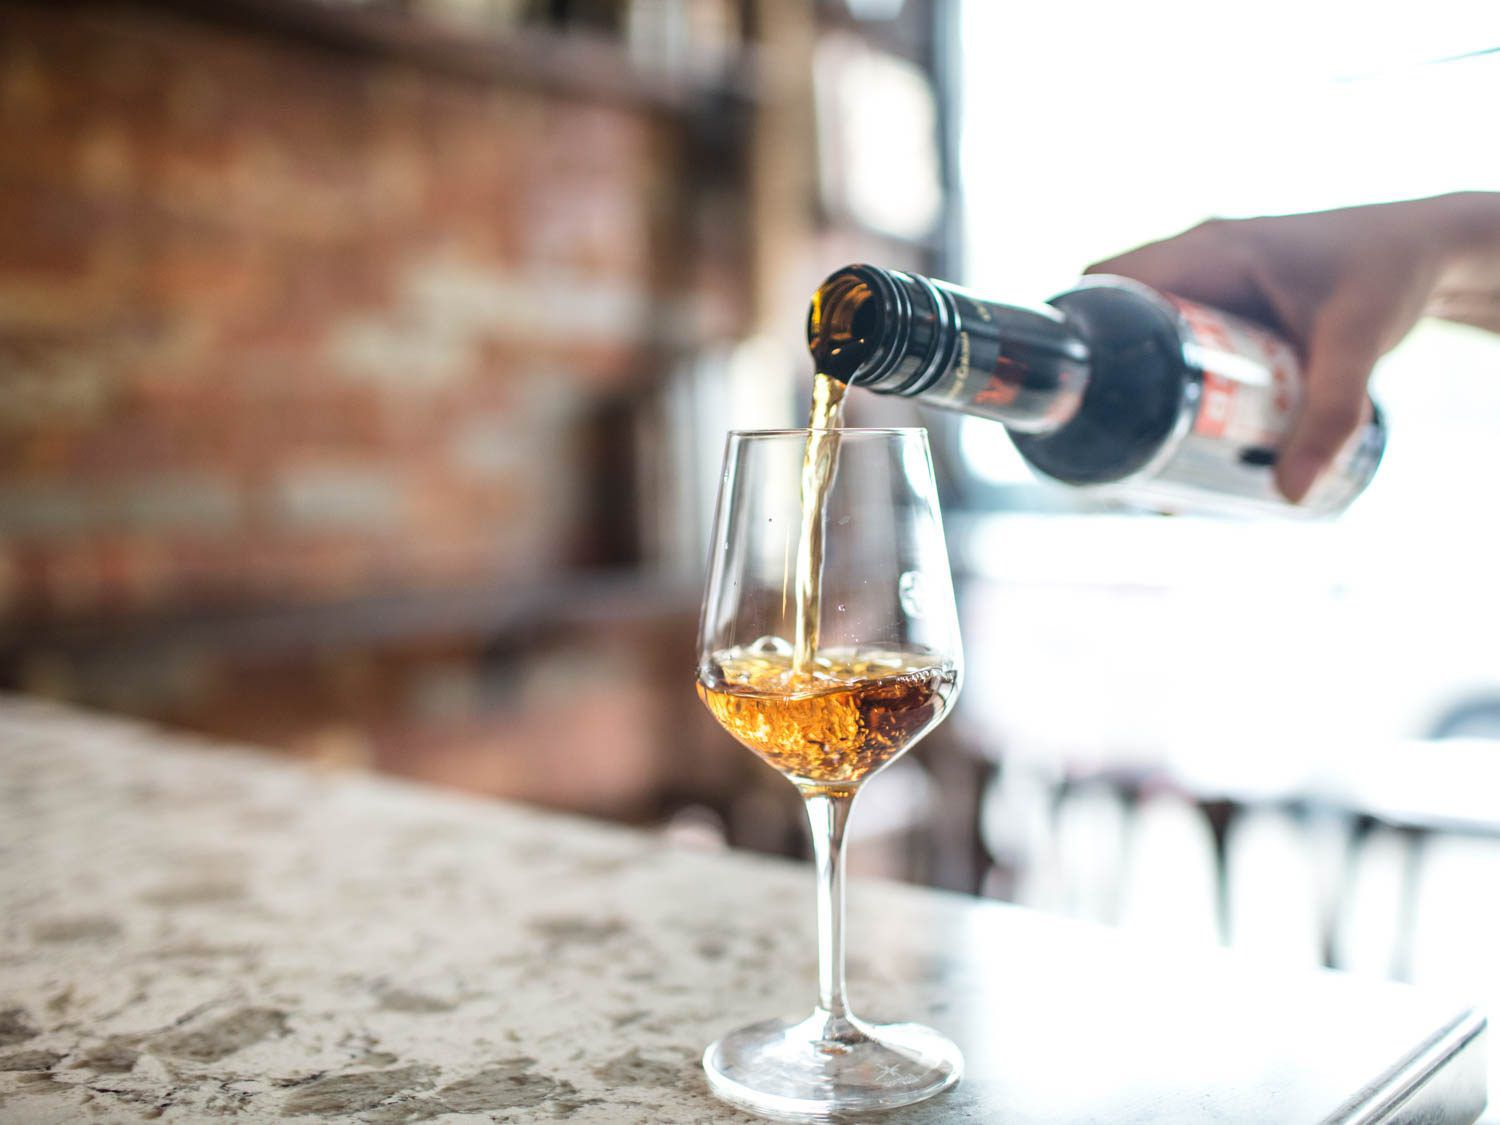 An amber-colored Oloroso sherry being poured into a wineglass